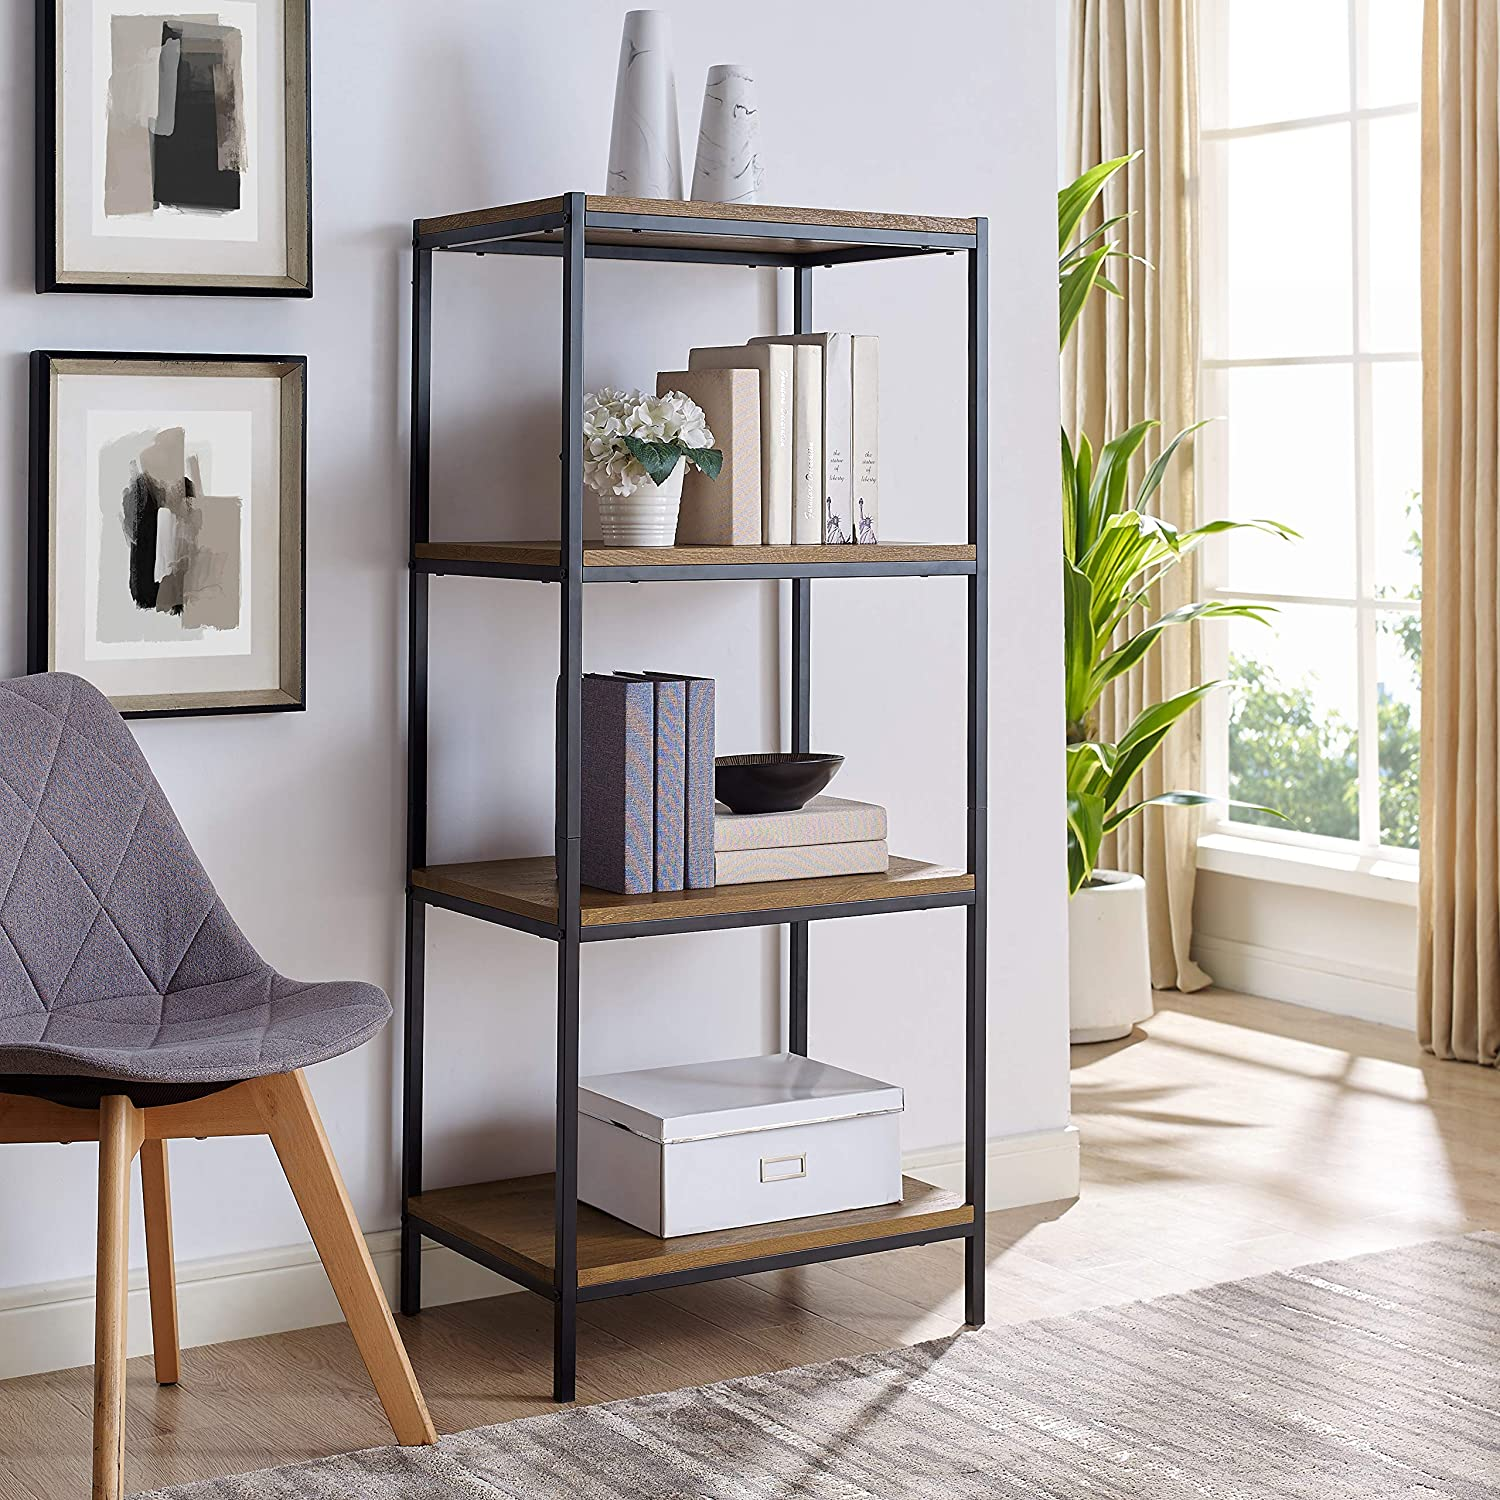 4 Tier Bookshelf by CAFFOZ Furniture Designs Rustic Industrial Bookcase with Modern Open Shelves Oak Brown Wood Look Accent Furniture Metal Frame Media Storage Rack Shelf Unit Living Room